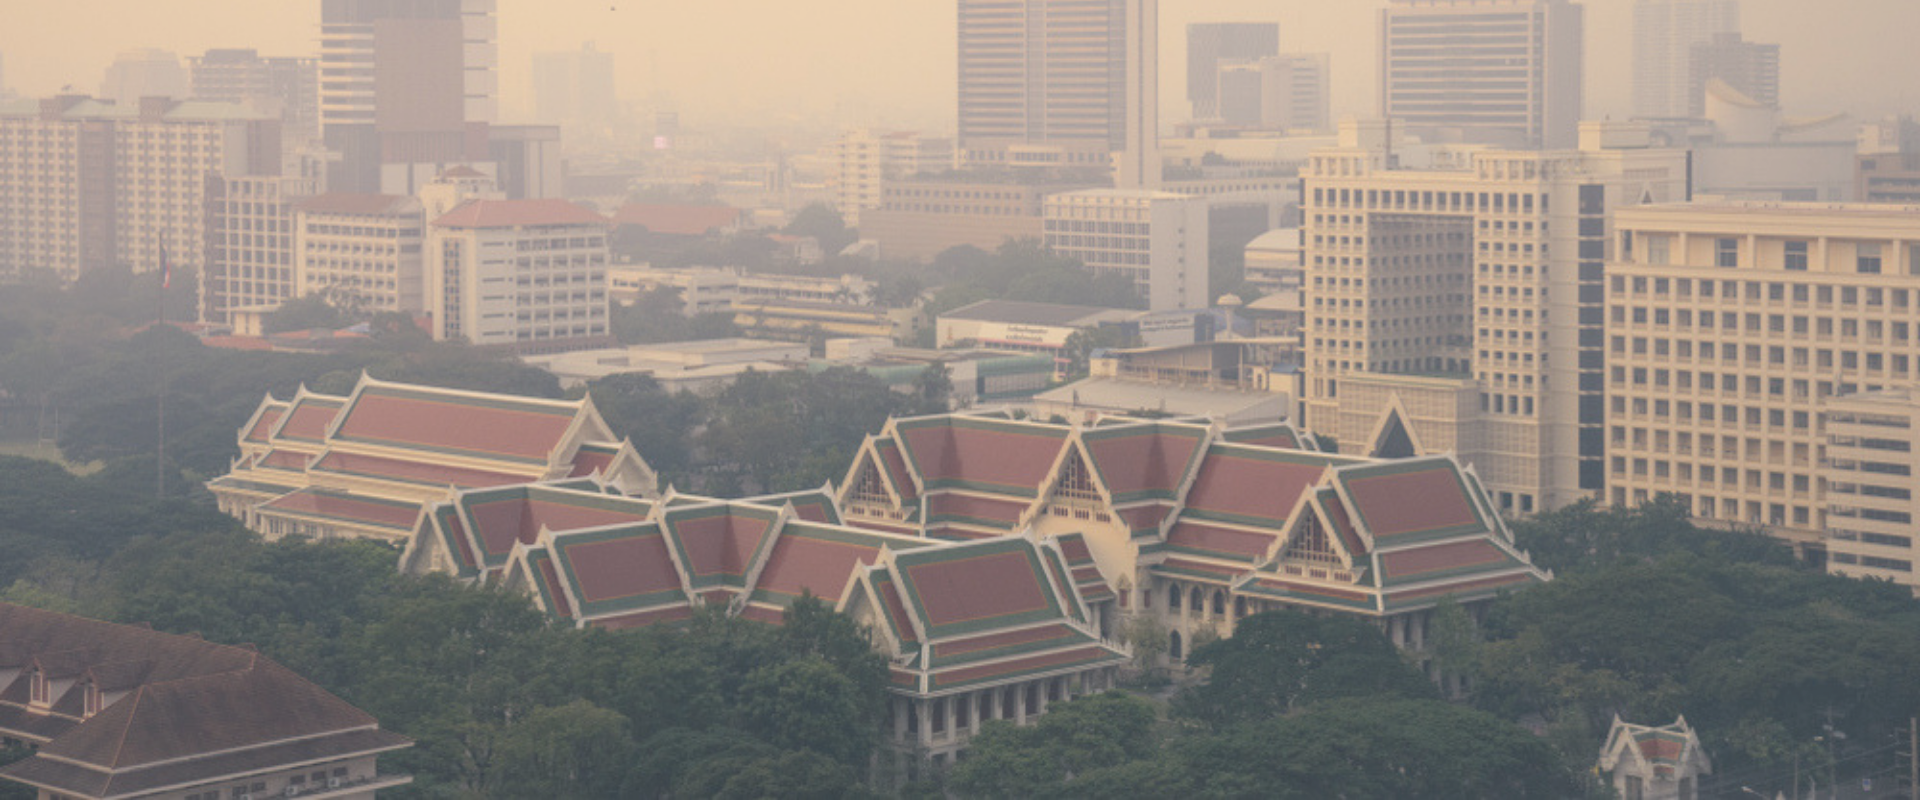 bangkok air pollution levels